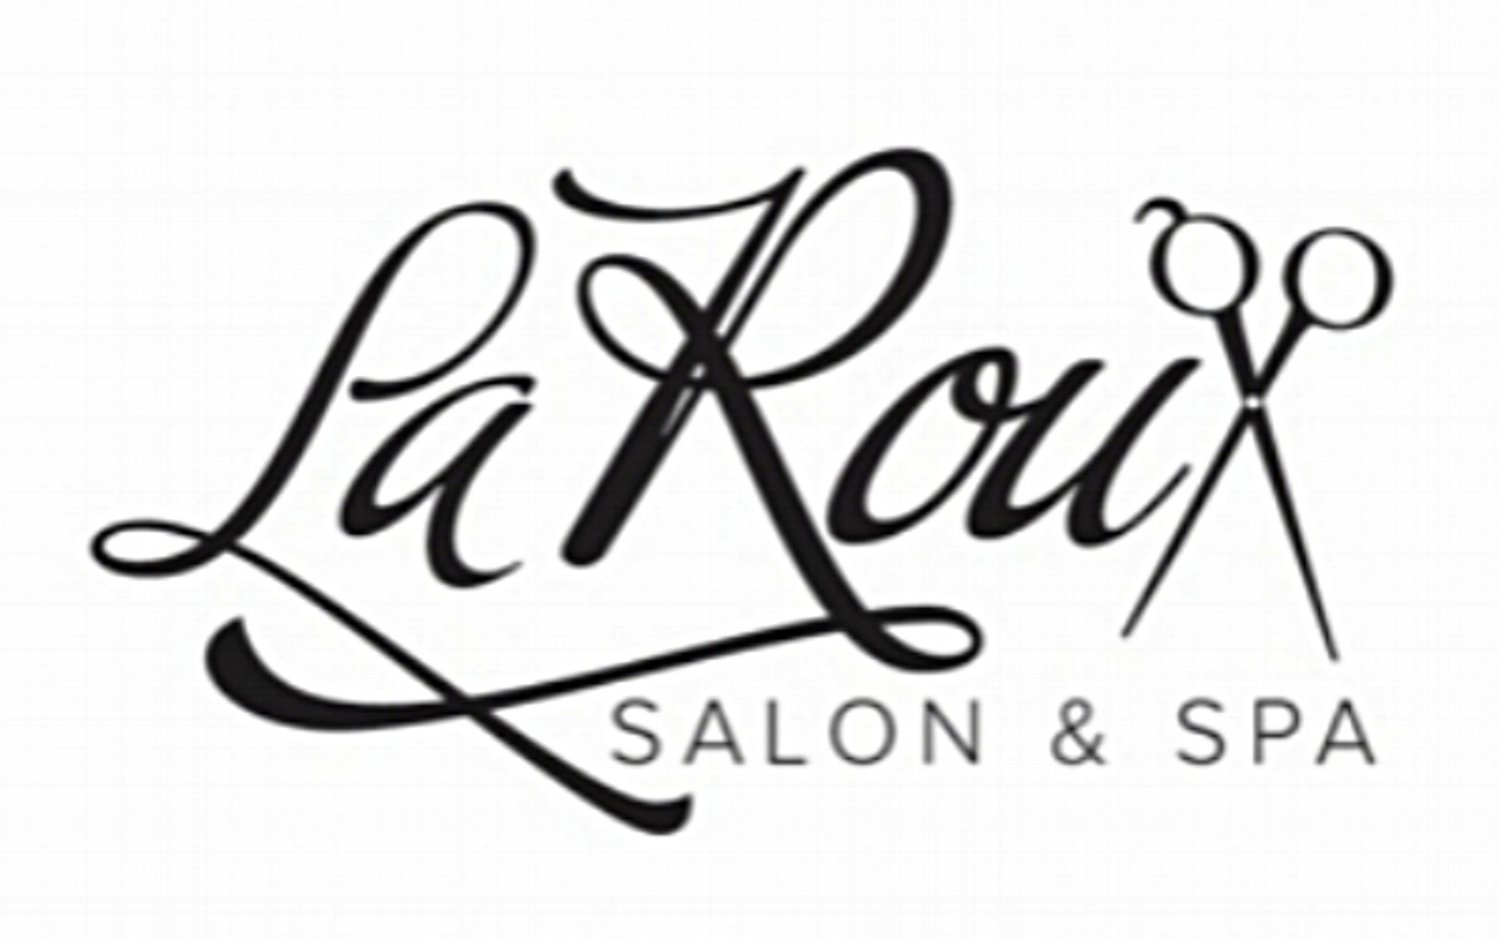 La Roux Salon and Spa